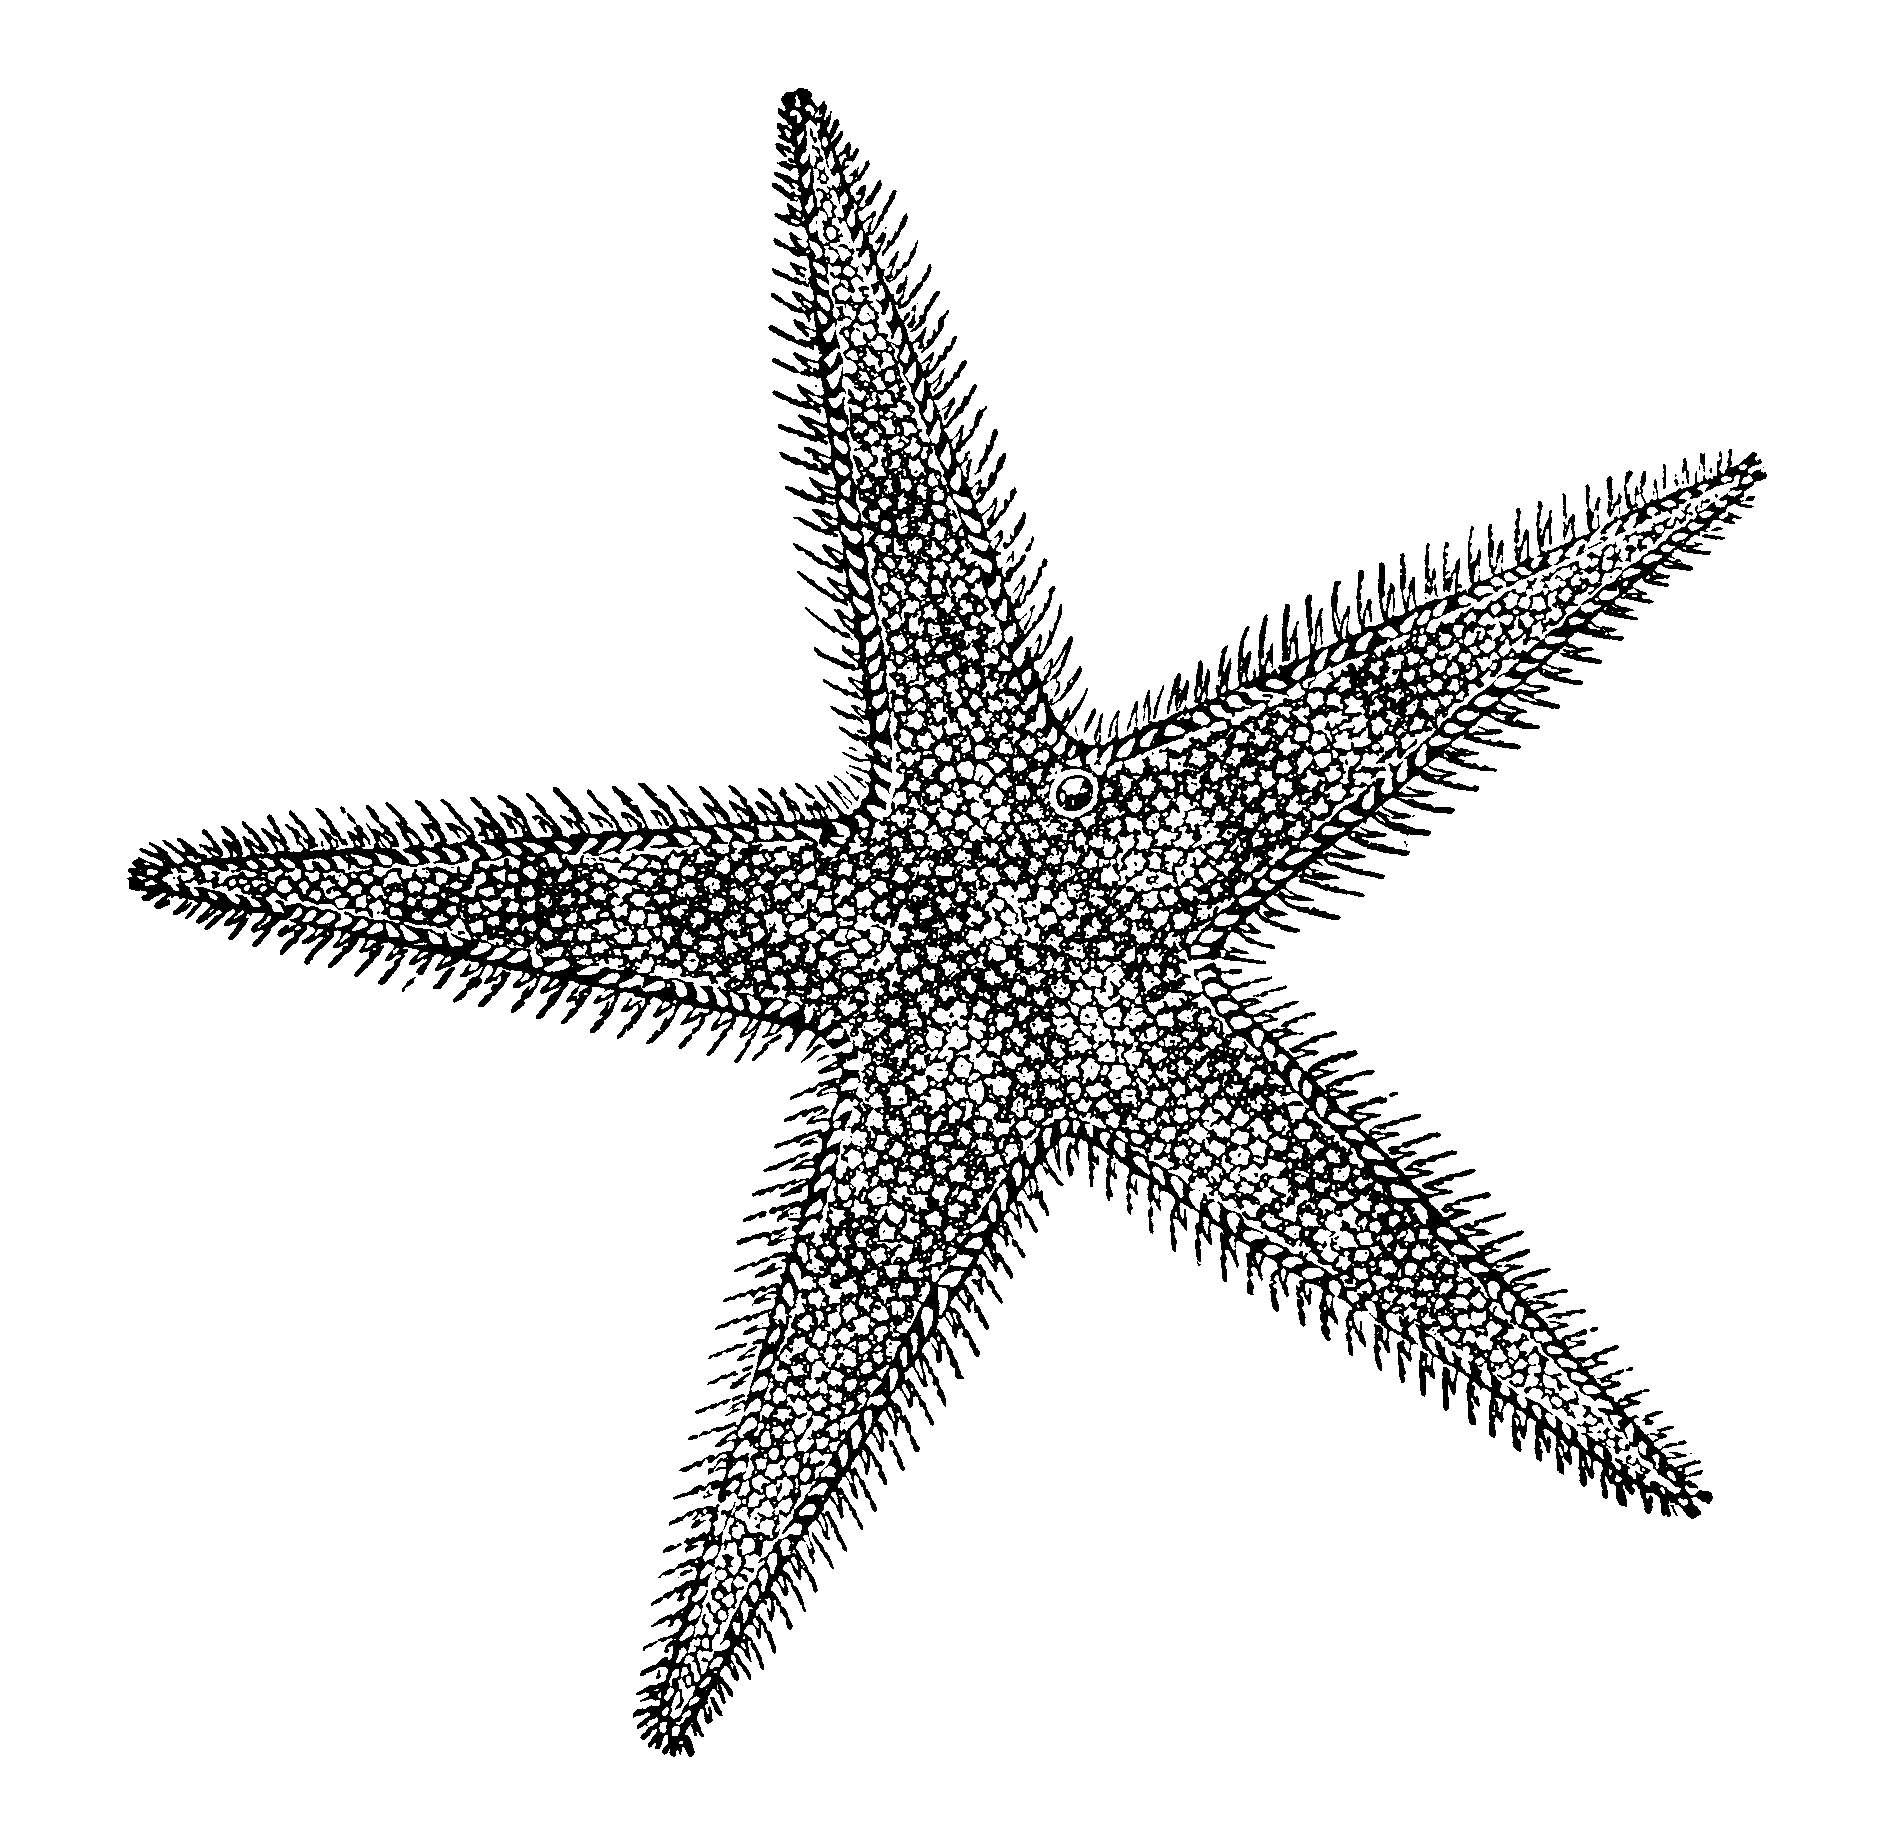 hight resolution of sea star diversity drawing